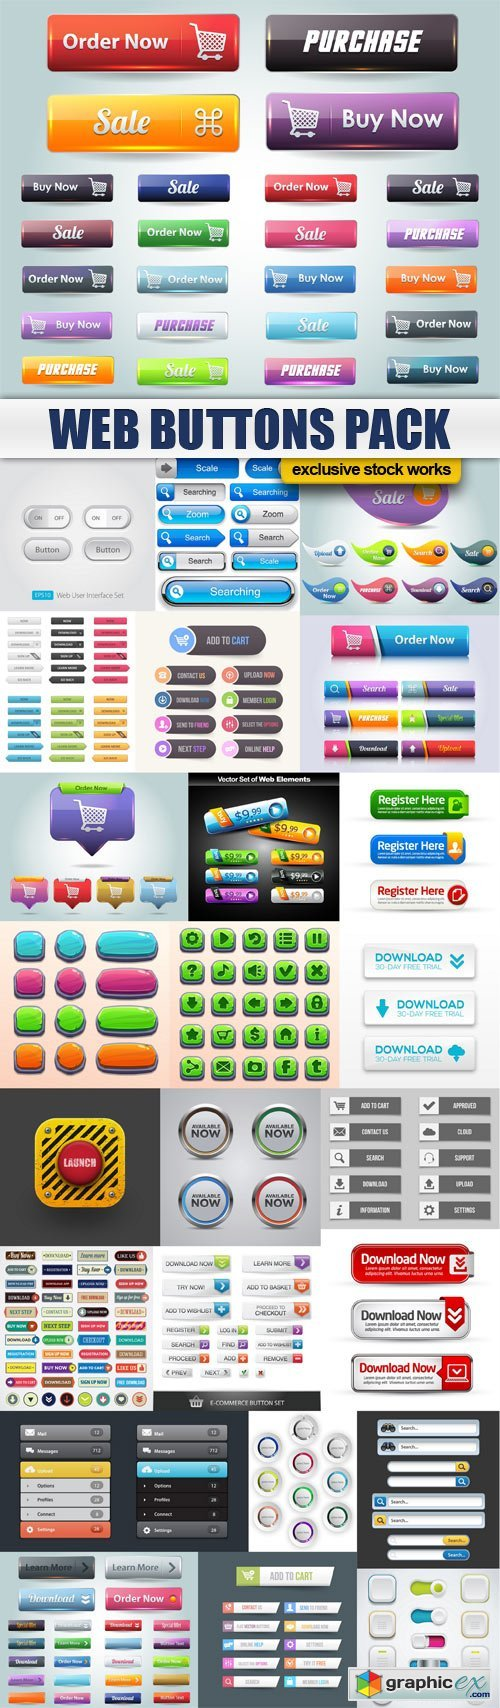 Web Buttons Pack - 25x EPS